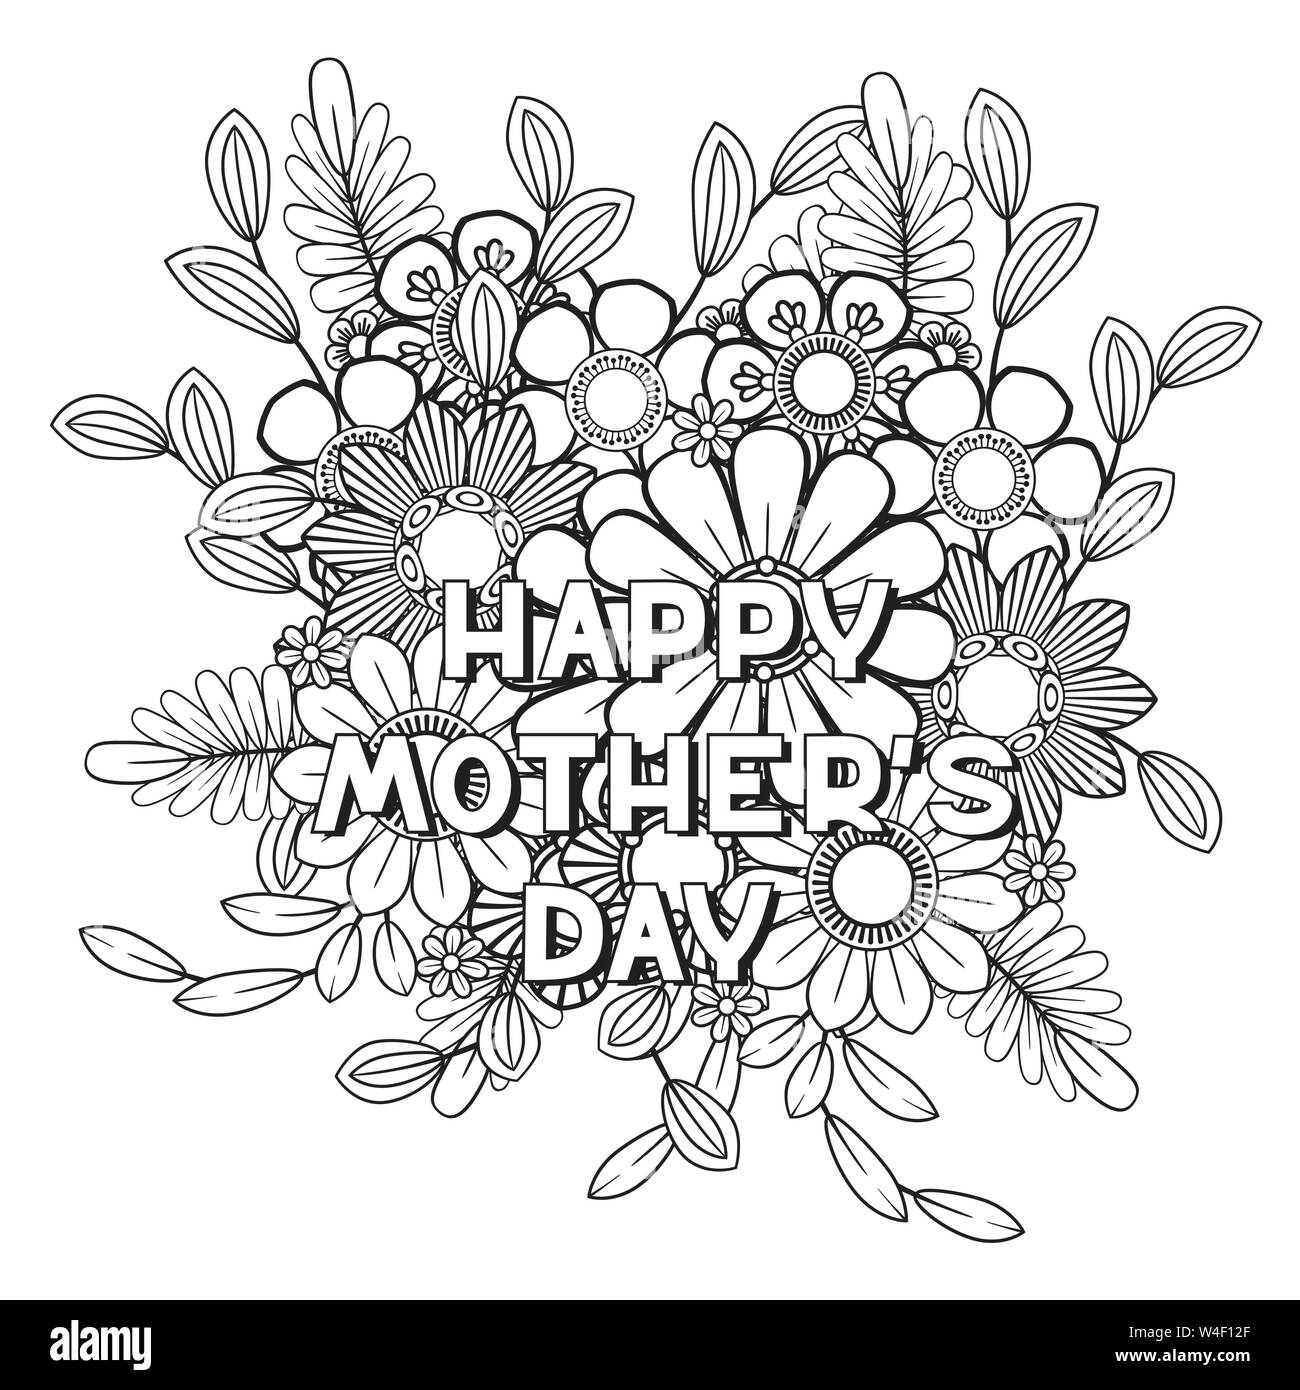 Happy Mother S Day Coloring Page For Adult Coloring Book Black And White Vector Illustration Isolated On White Background Stock Vector Image Art Alamy